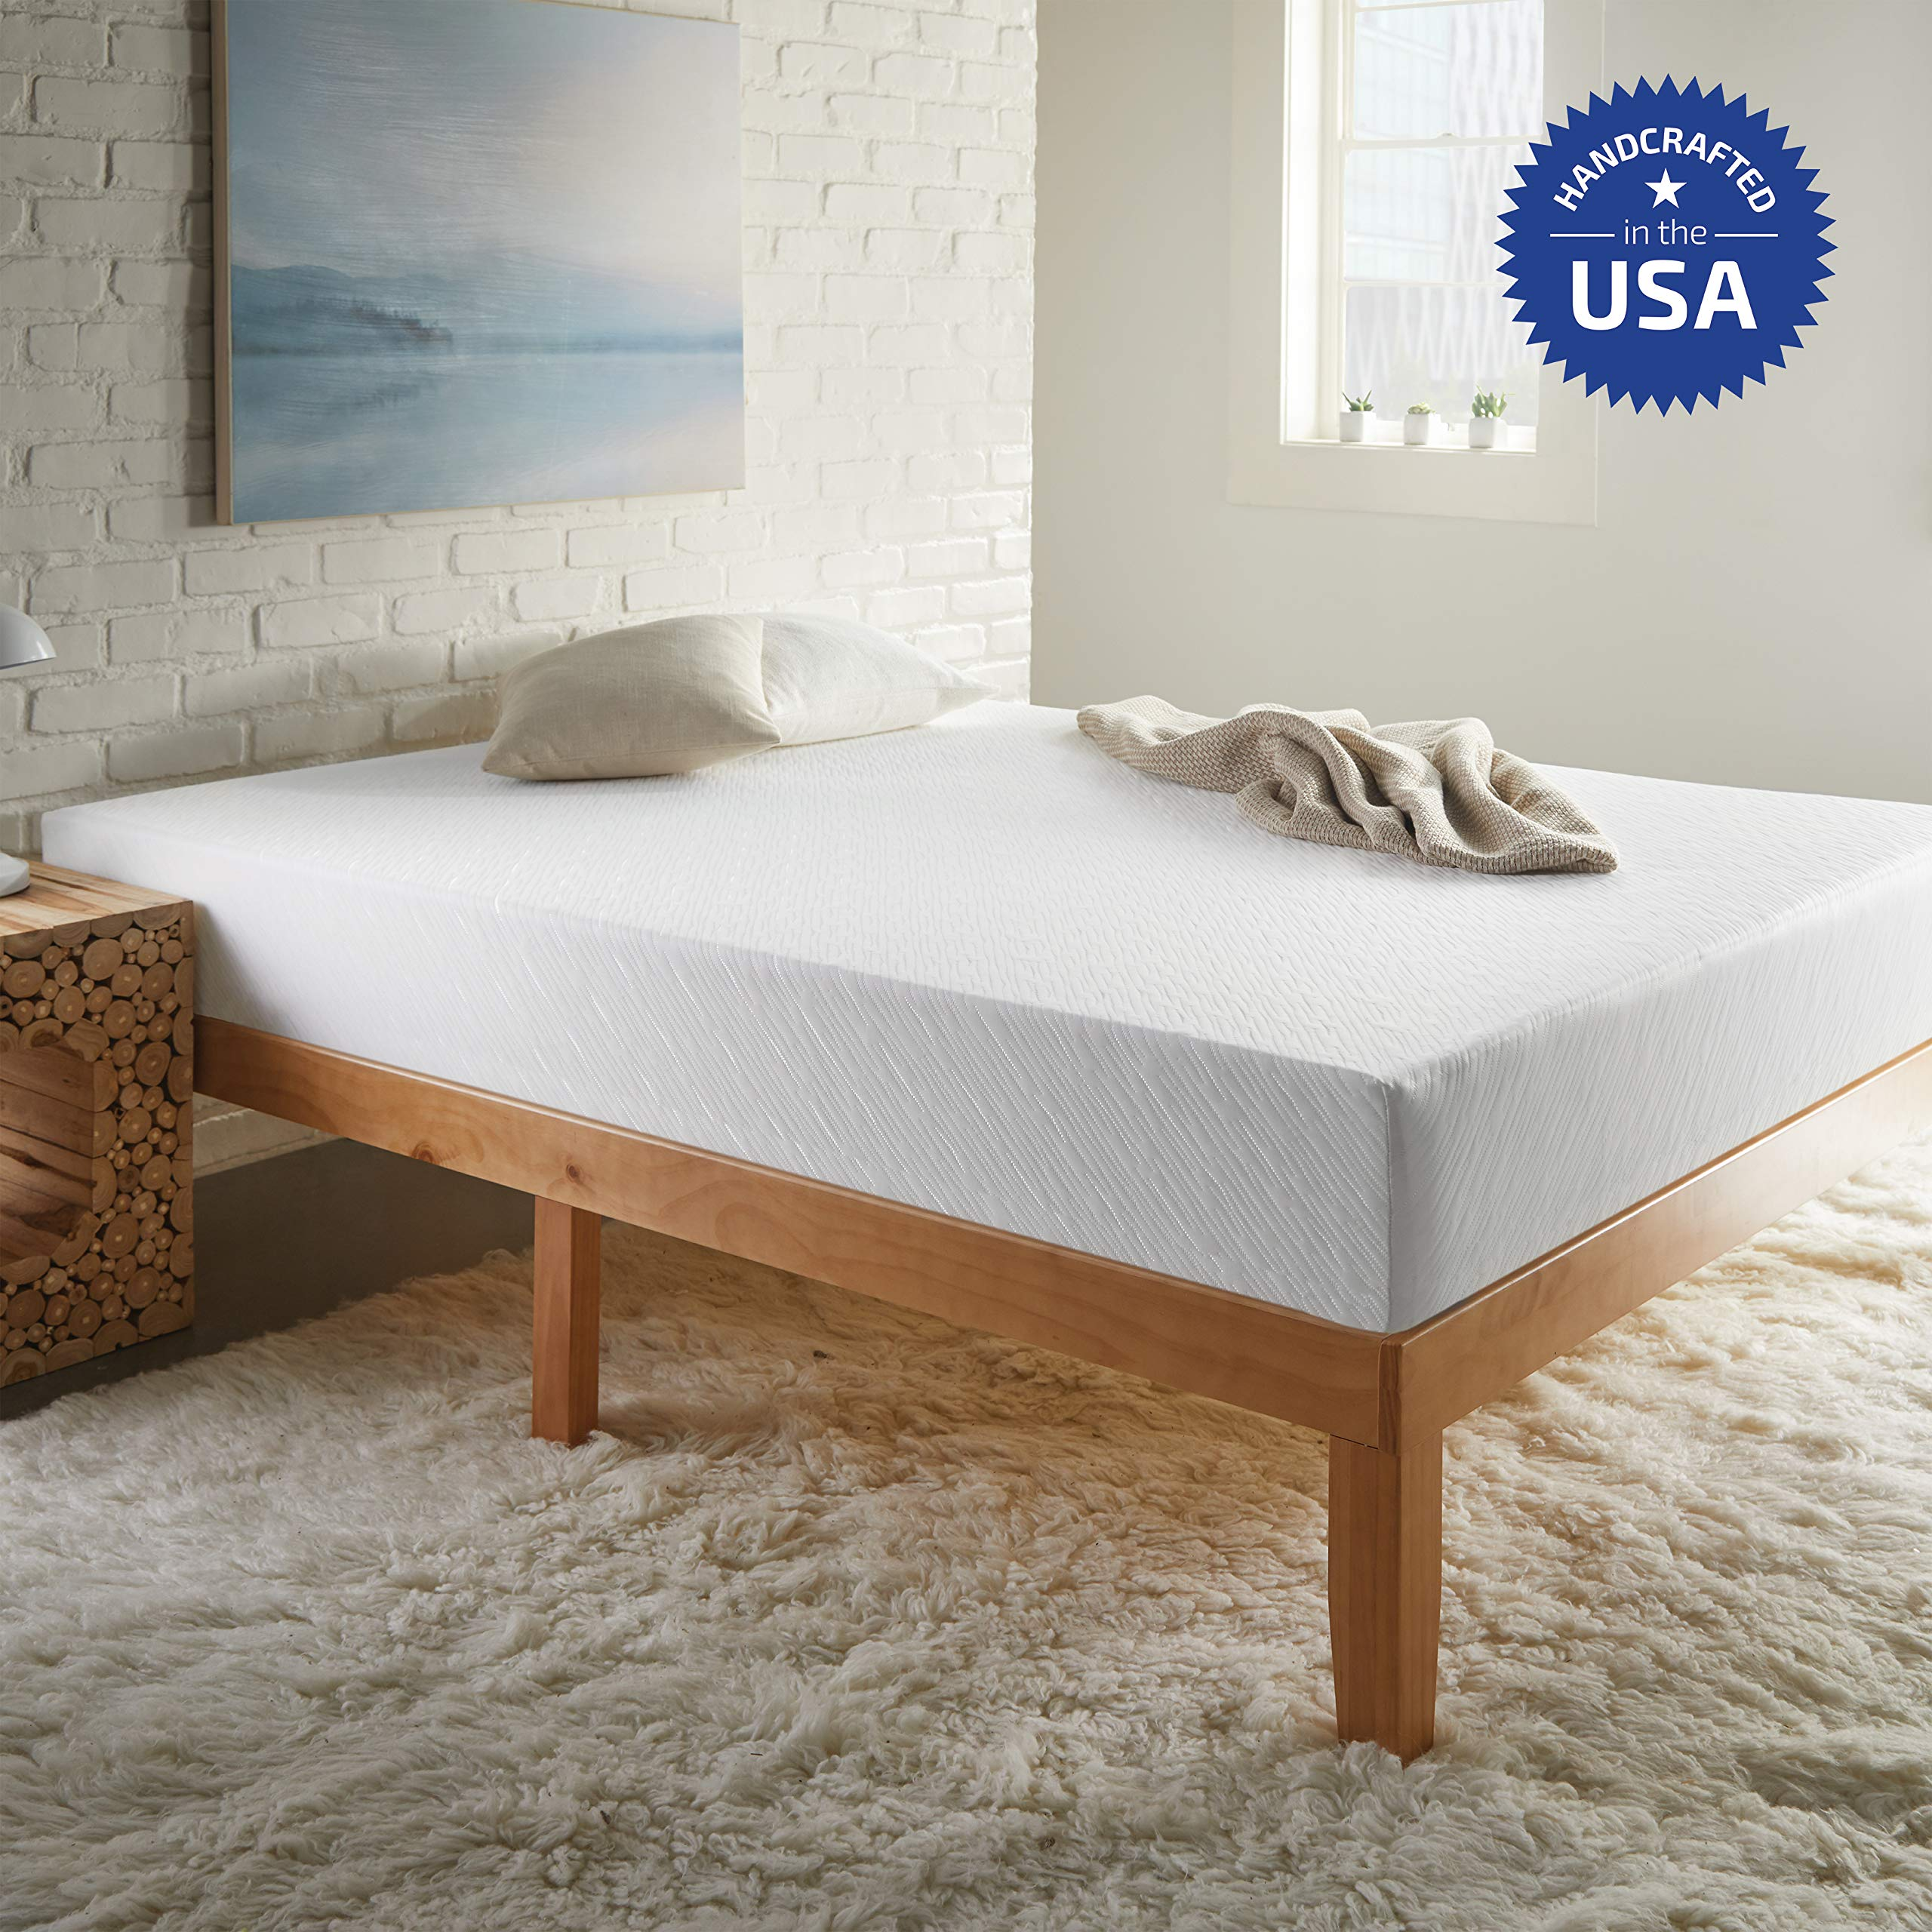 SLEEPINC. 8-Inch Memory Foam Mattress, Comfort Body Support, Mattress in Box, No Harmful Chemicals, Medium Firm, Handcrafted in The USA, 10-Year Warranty, Twin